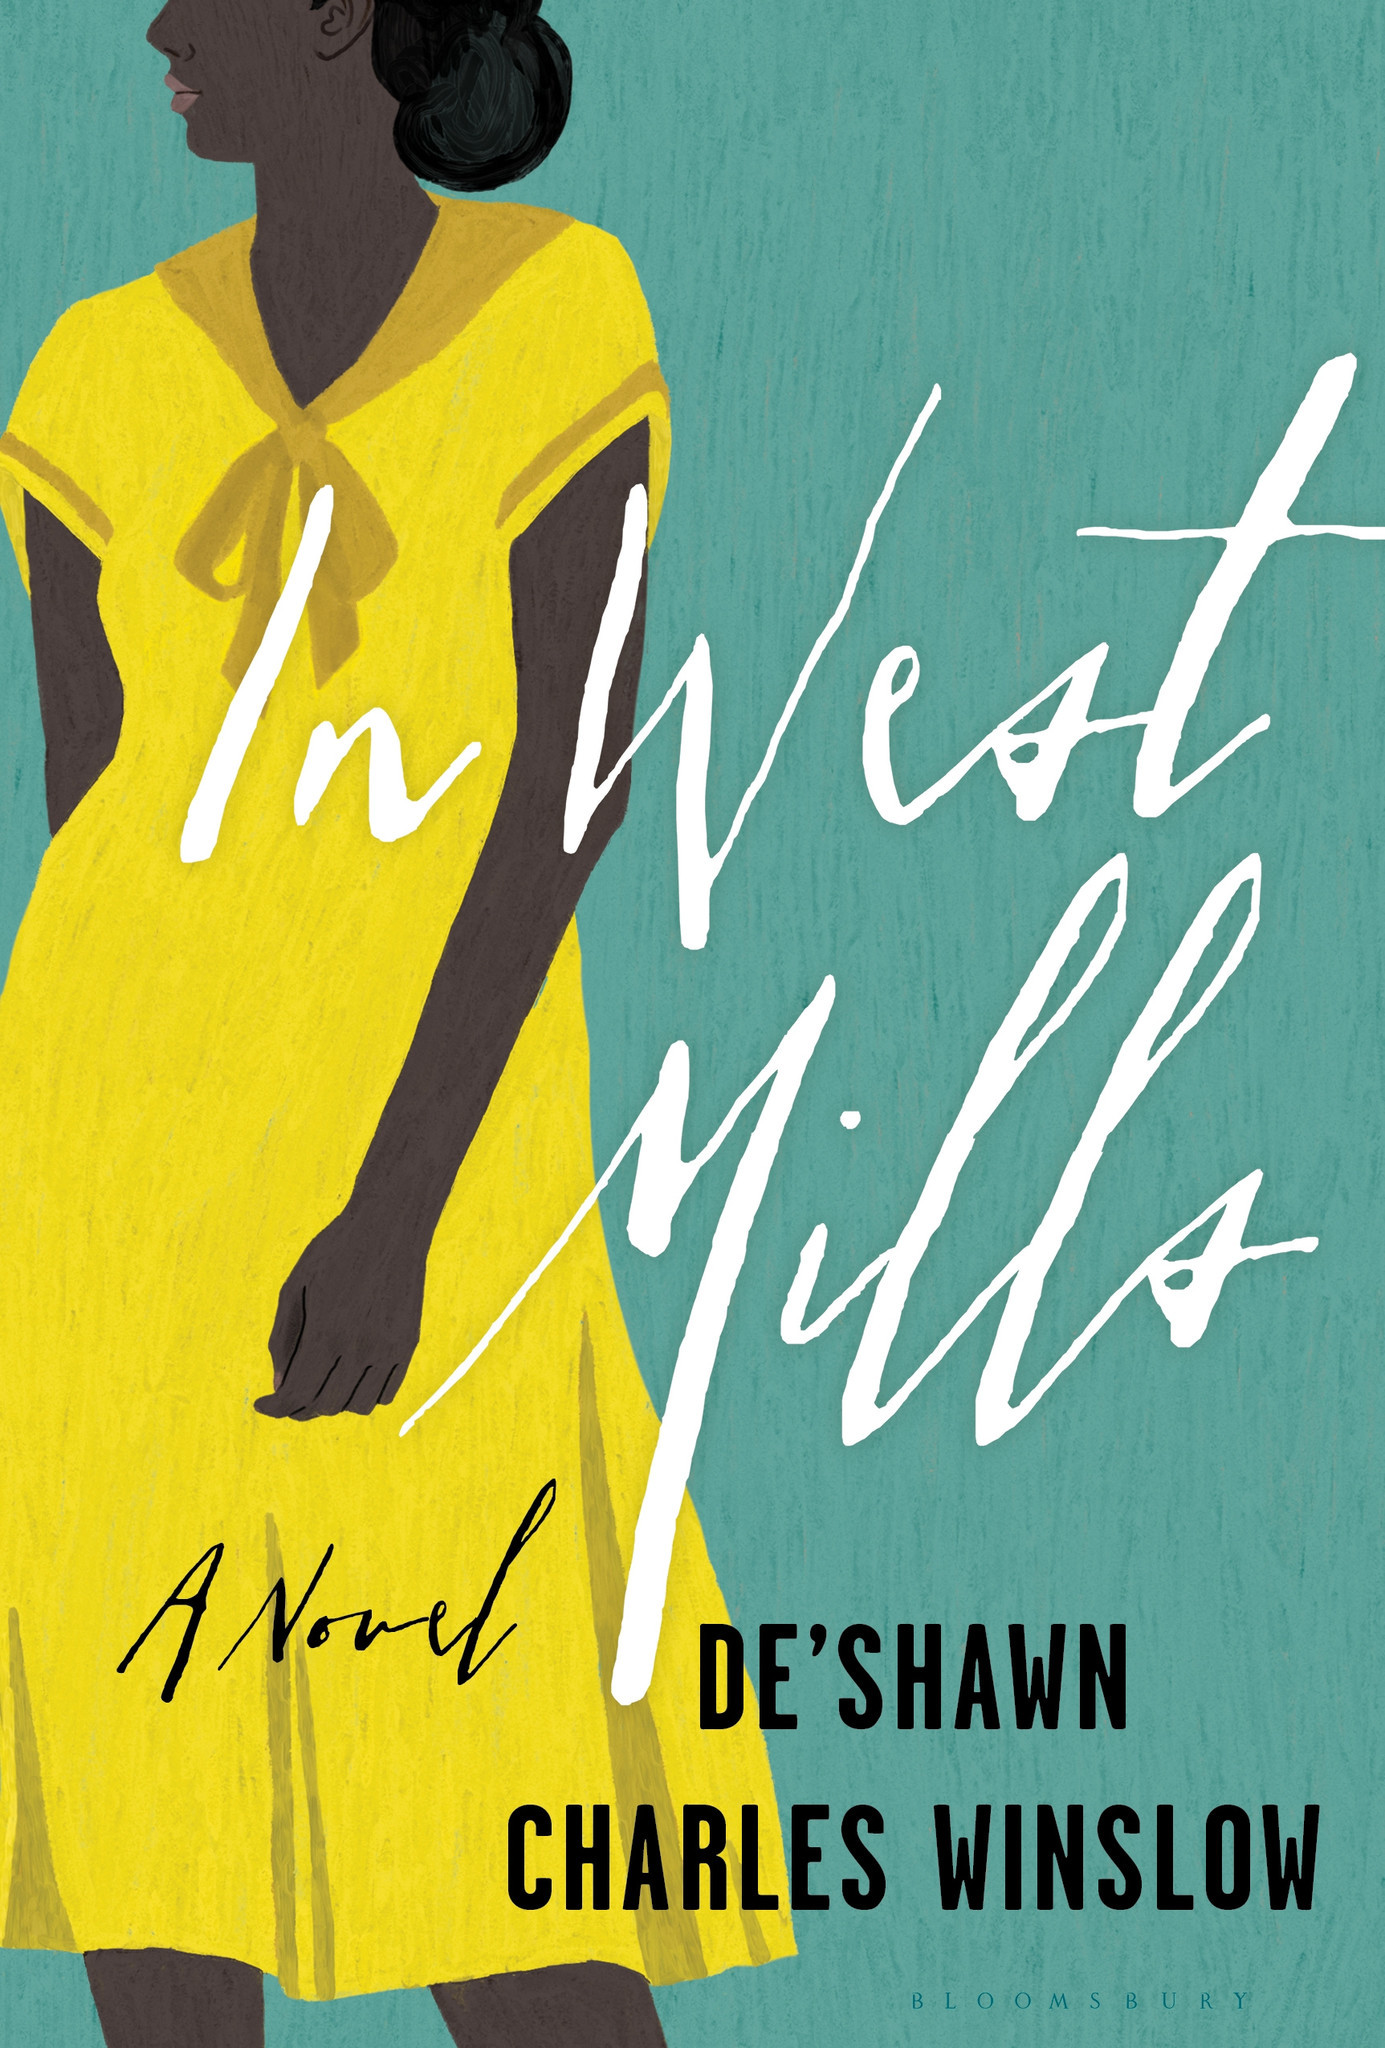 """A book jacket for De'Shawn Charles Wislow's """"In West Mills."""""""